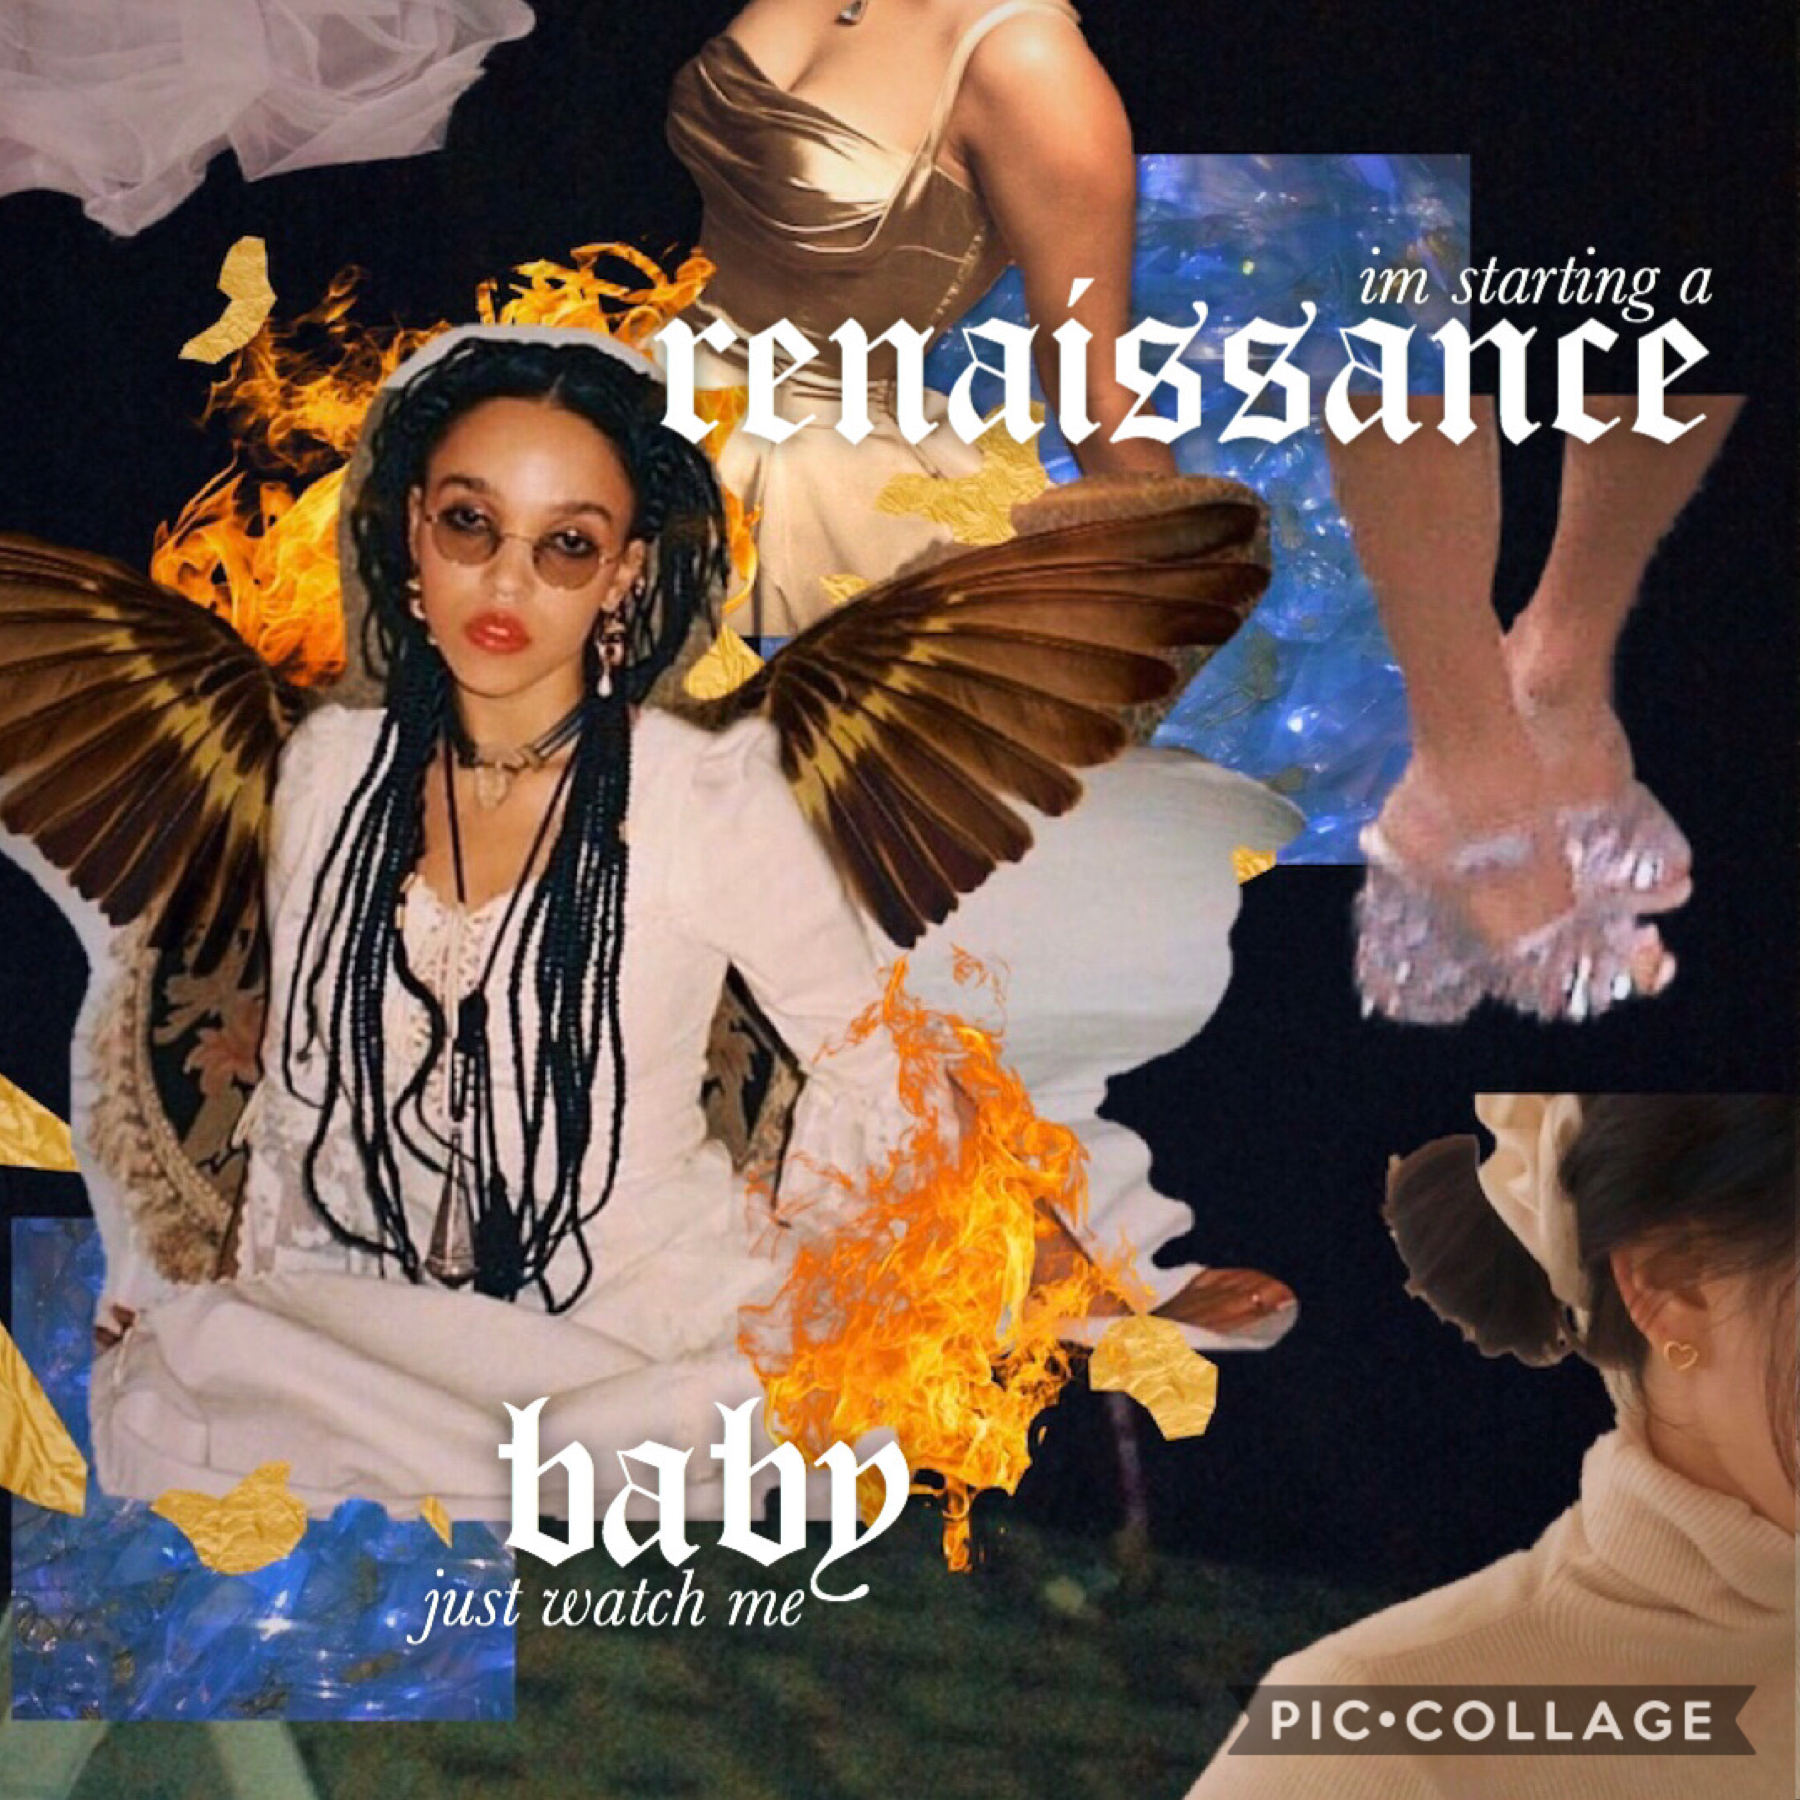 🔥requested by...🔥  @braindead_  this is a birthday edit for avery of fka twigs🎂  drop ur birthdays so i don't miss any of them or if you guys want a custom collage😅🎂  brady, becca, and chloe if u guys want one lmk💗